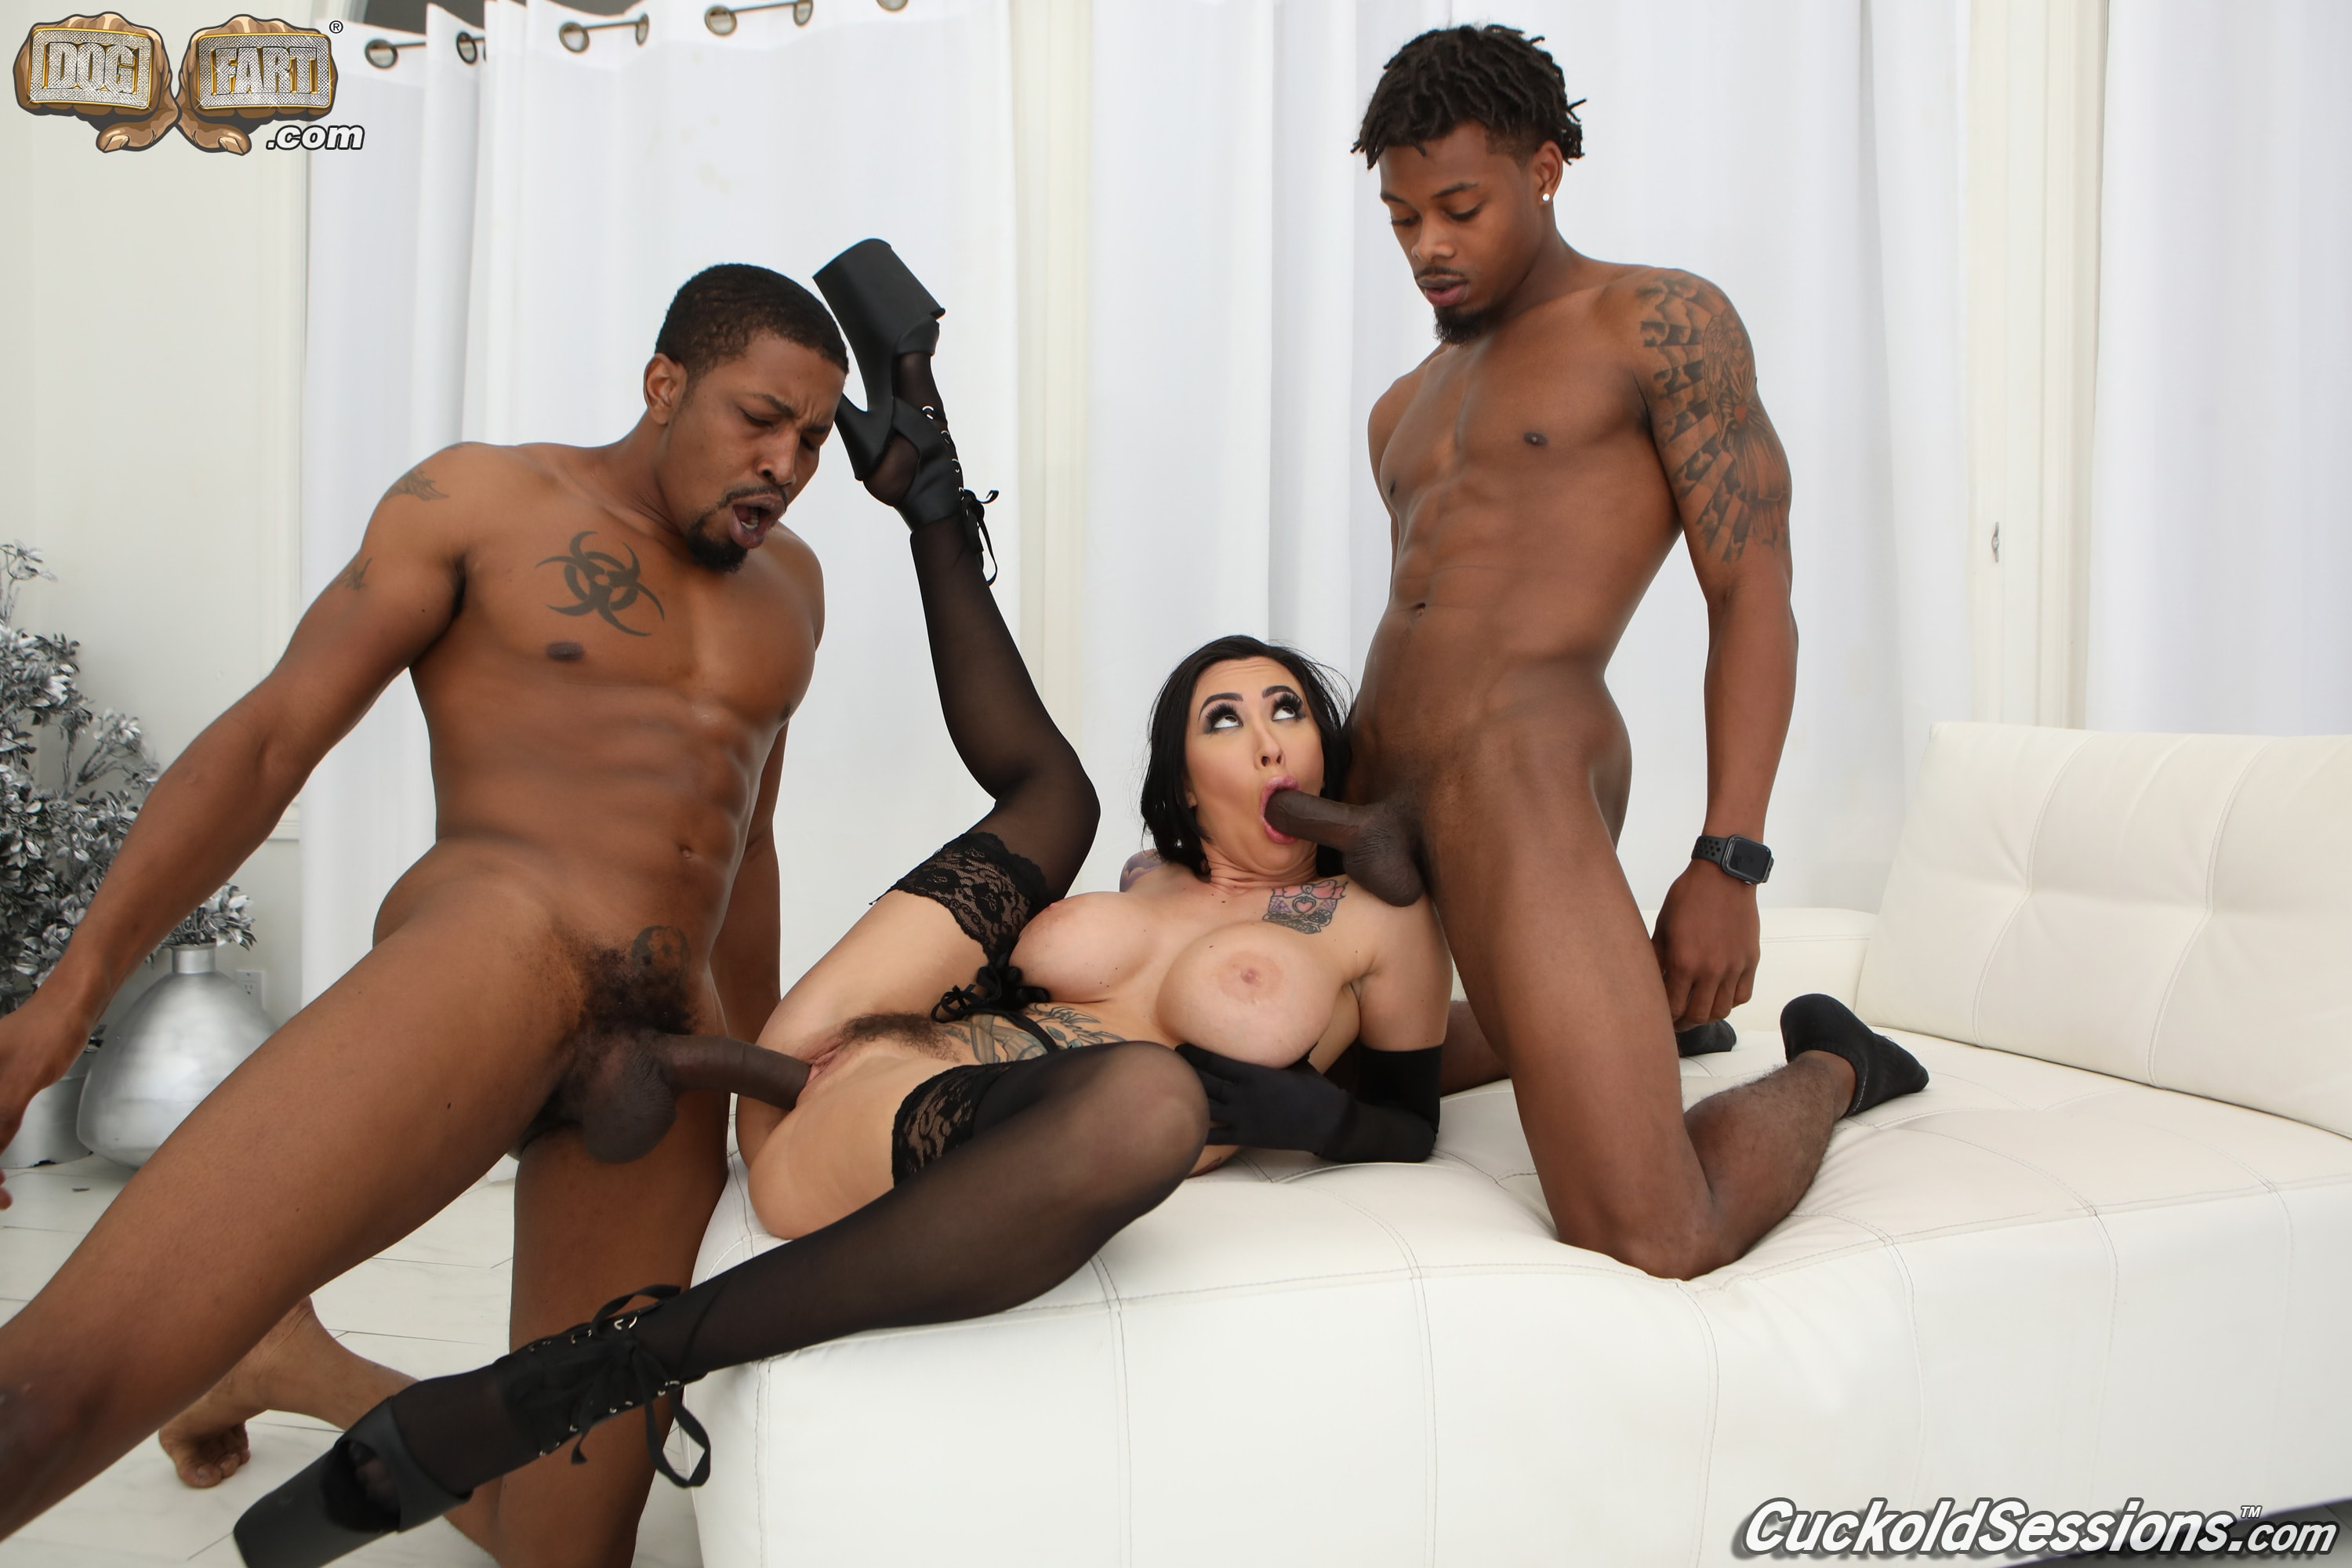 Dogfart '- Cuckold Sessions' starring Lily Lane (Photo 14)